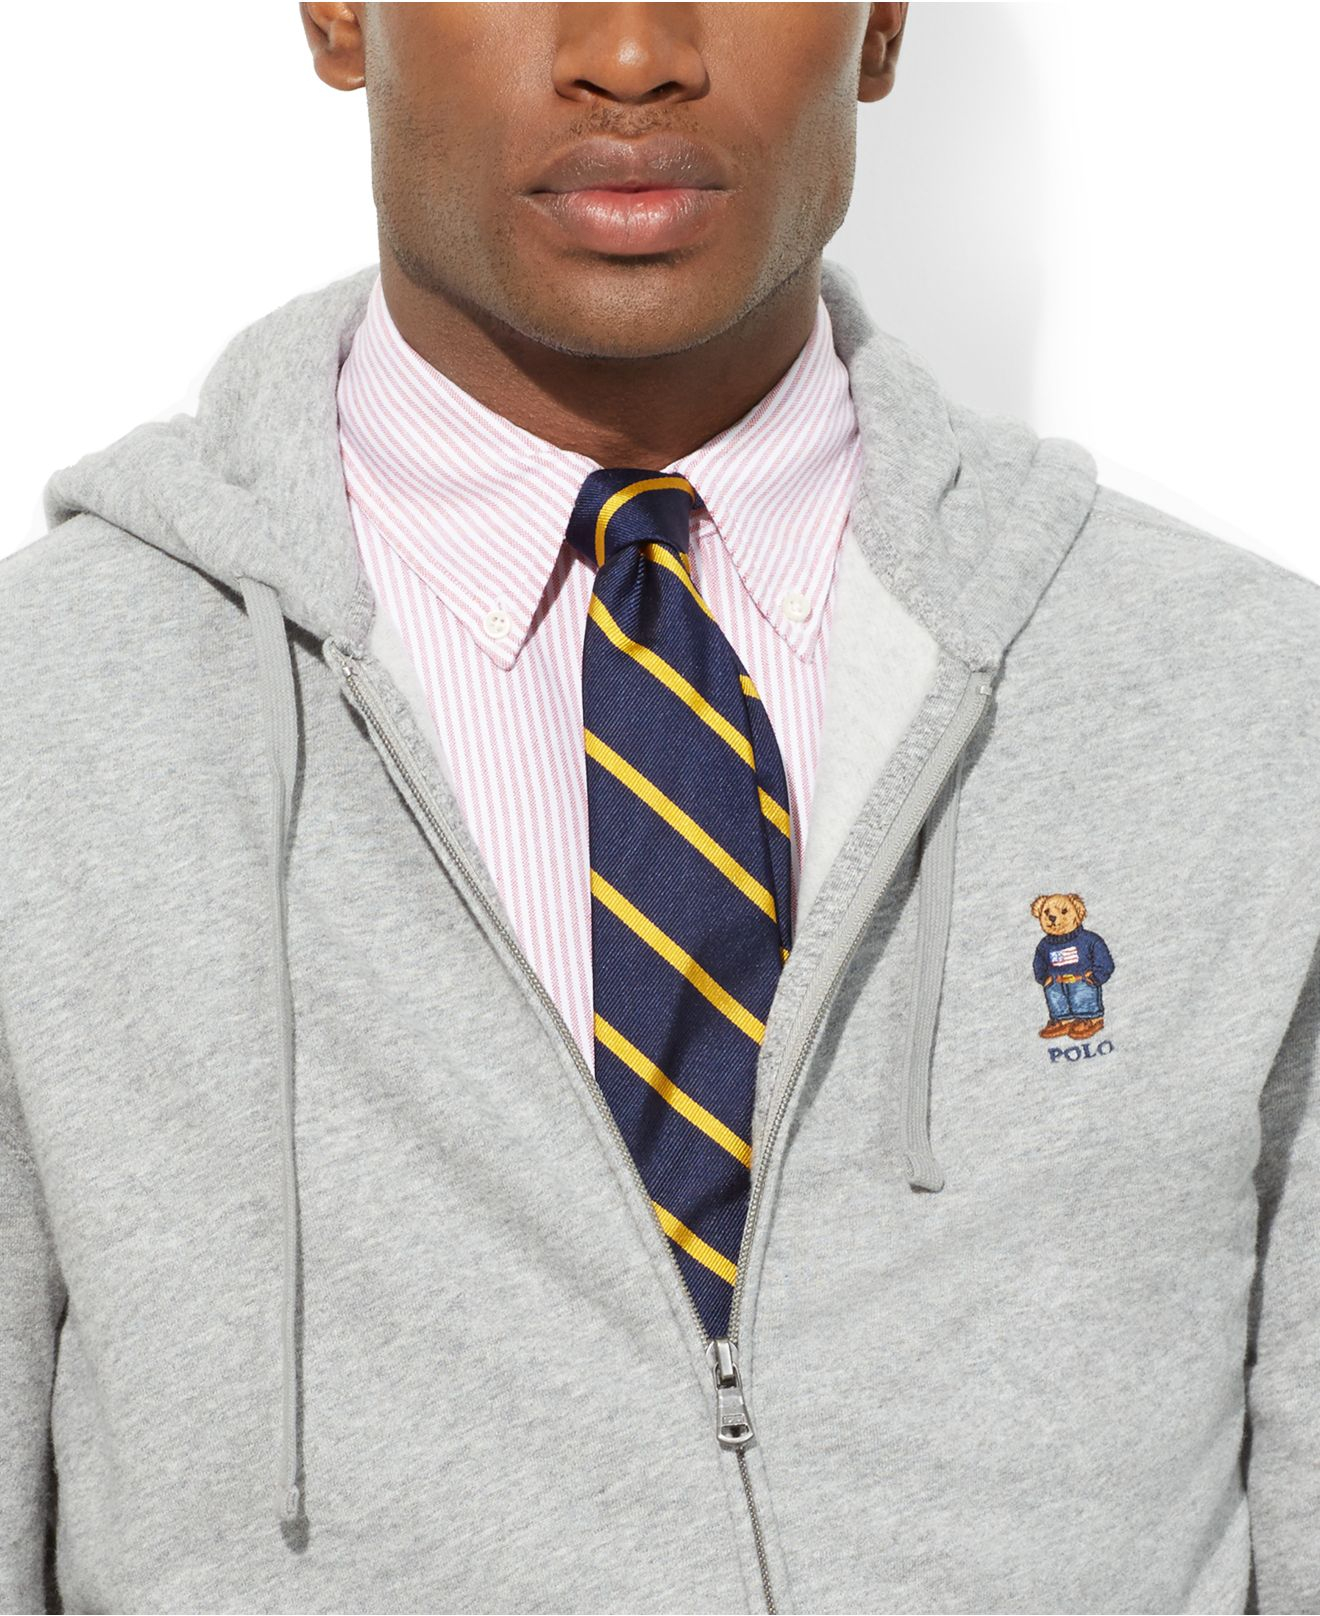 Ralph Lauren Polo Grey Zip Hooded Sweatshirt